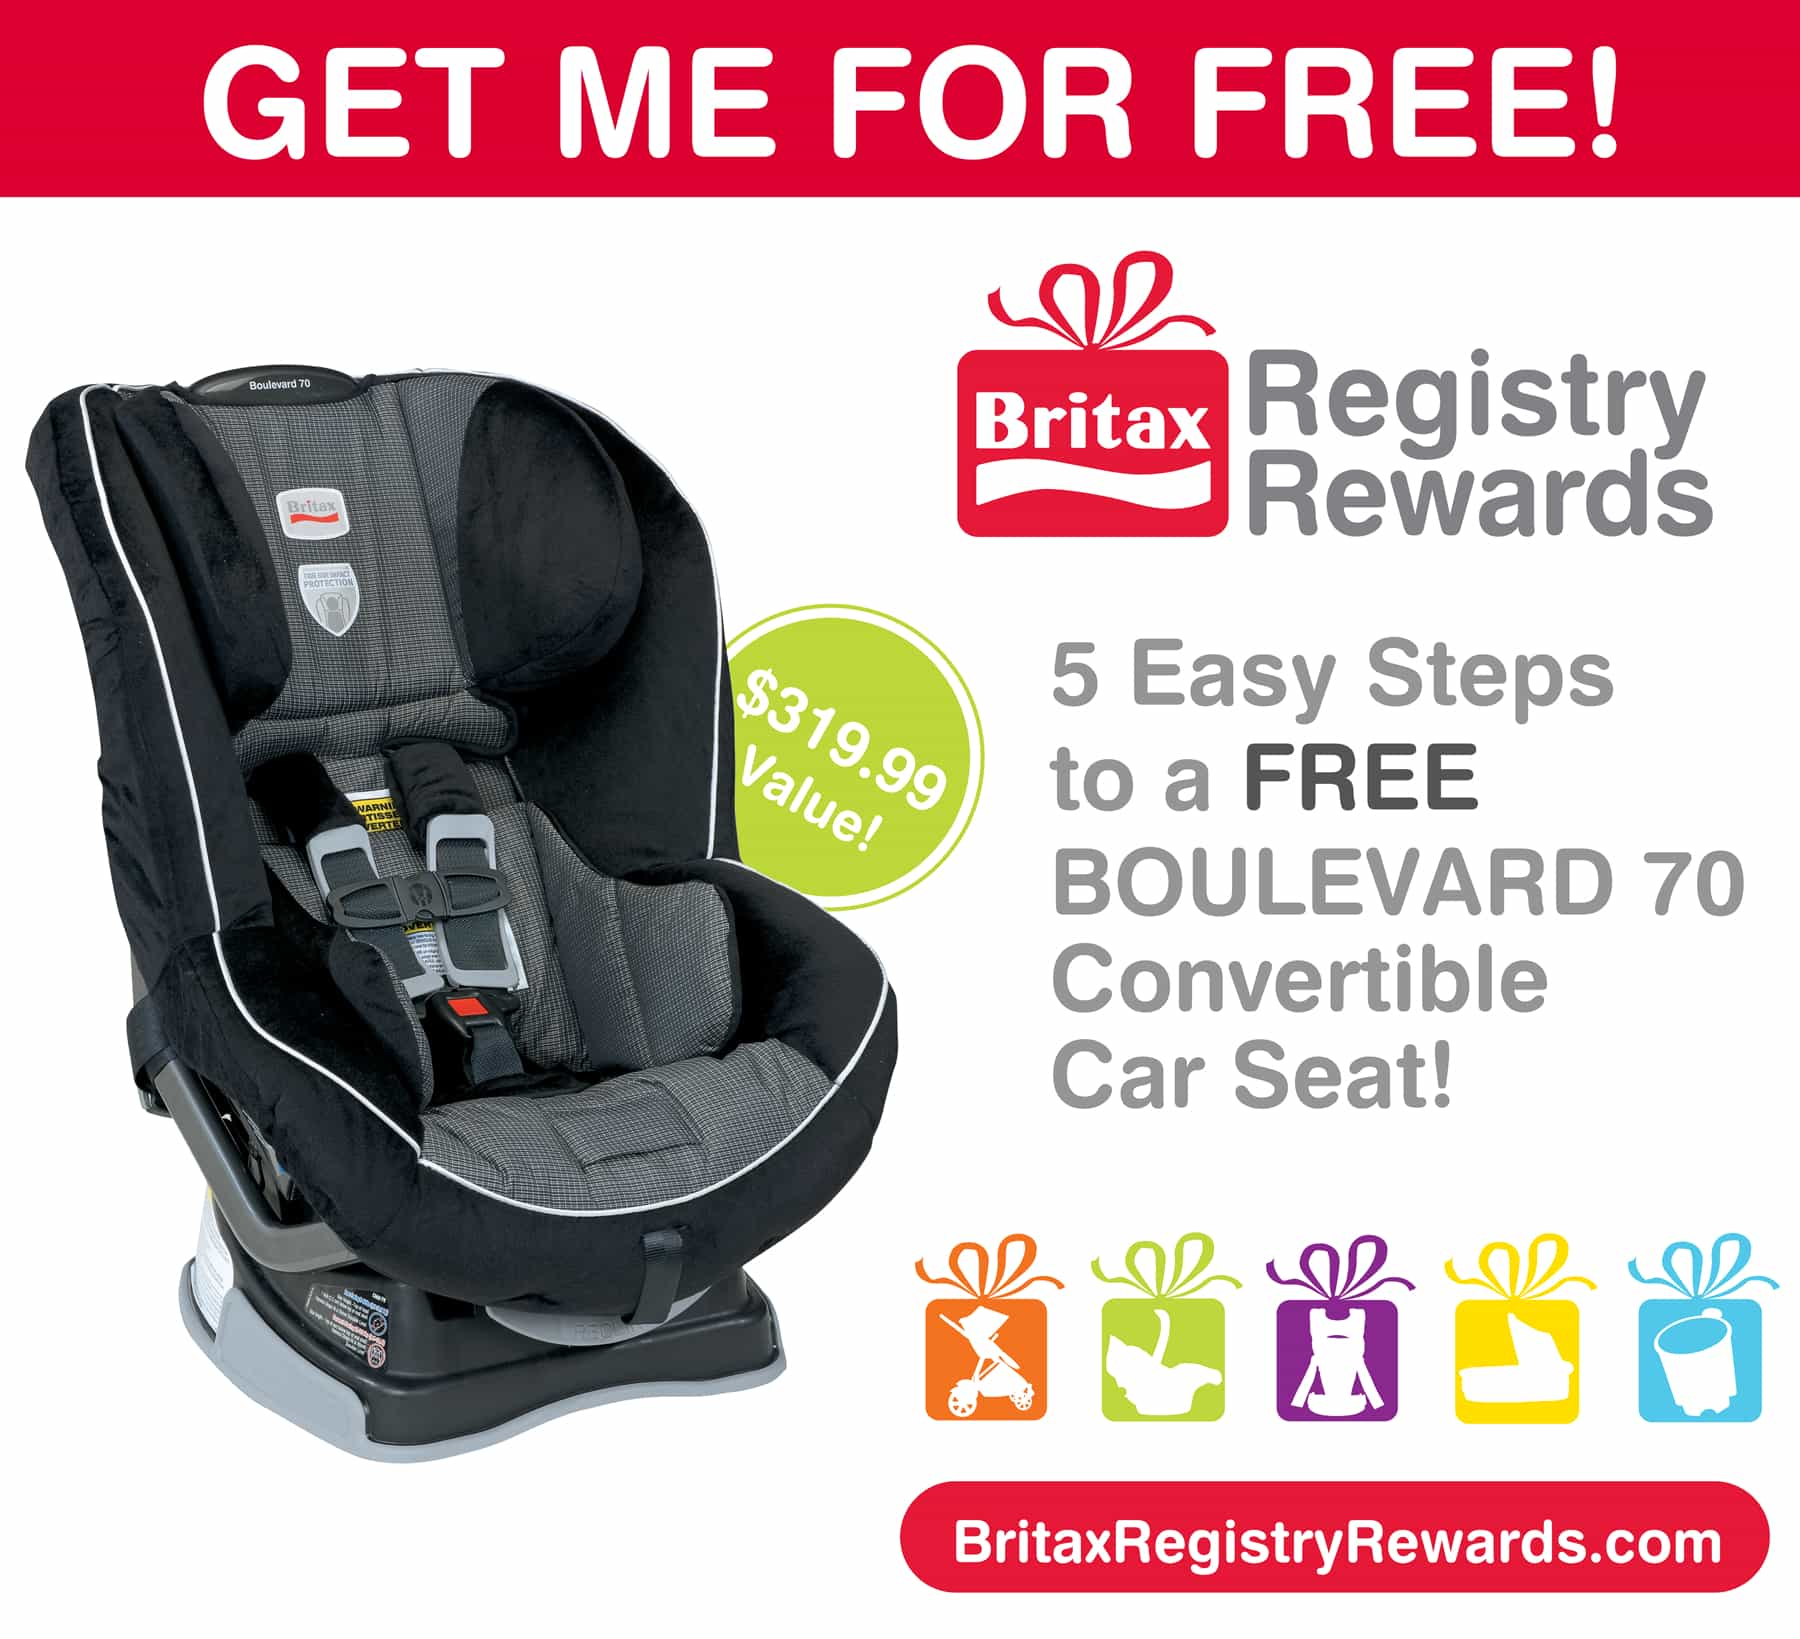 Earn a free BOULEVARD 70 convertible car seat!!